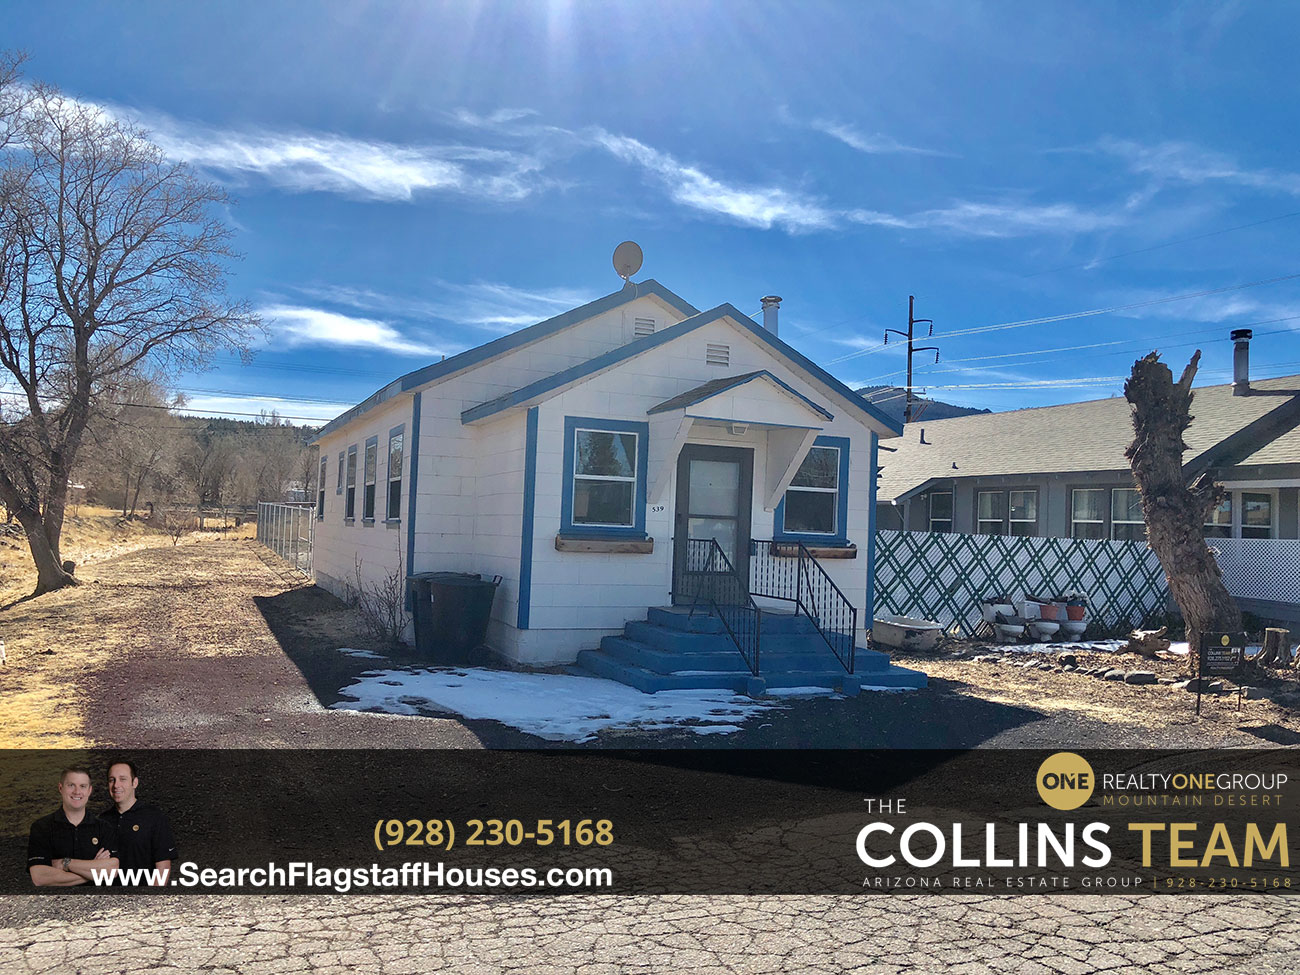 Flagstaff Tiny Home in Williams AZ